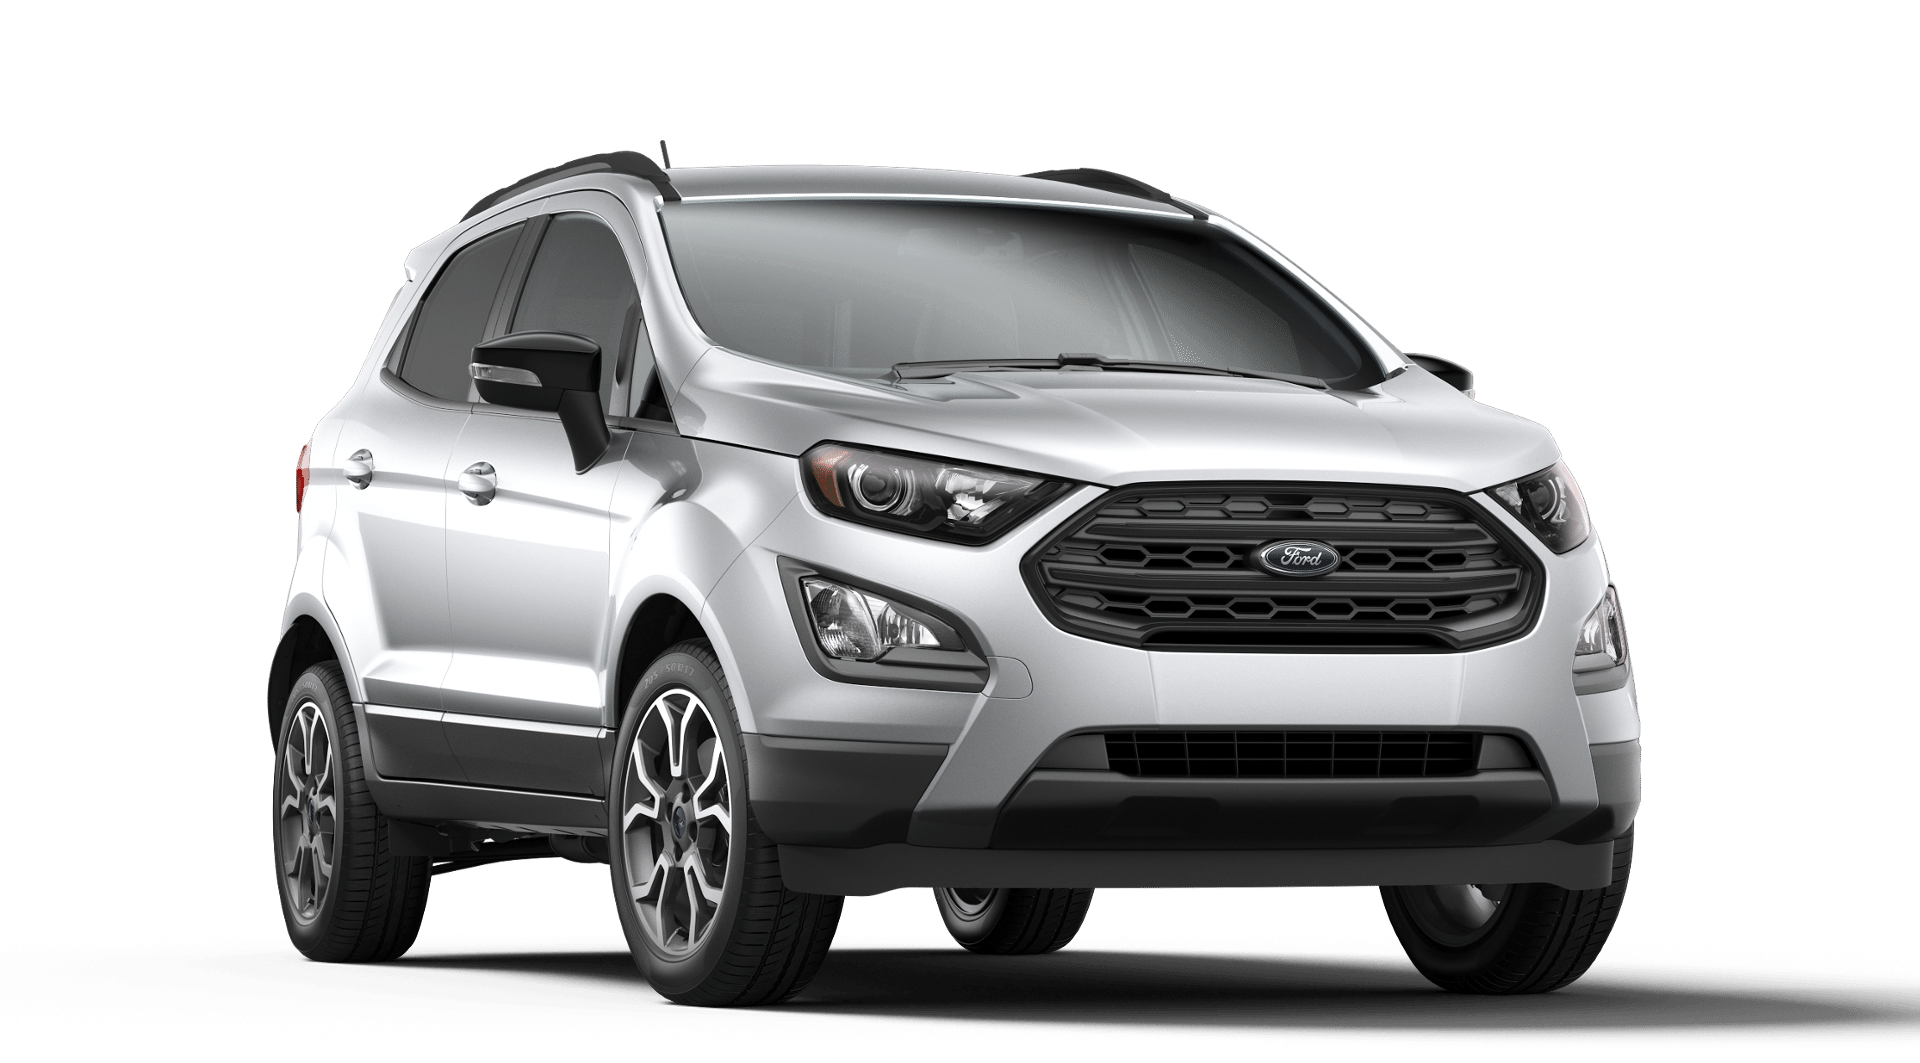 2019-Ford-EcoSport-Moondust-Silver-Exterior-Color_o